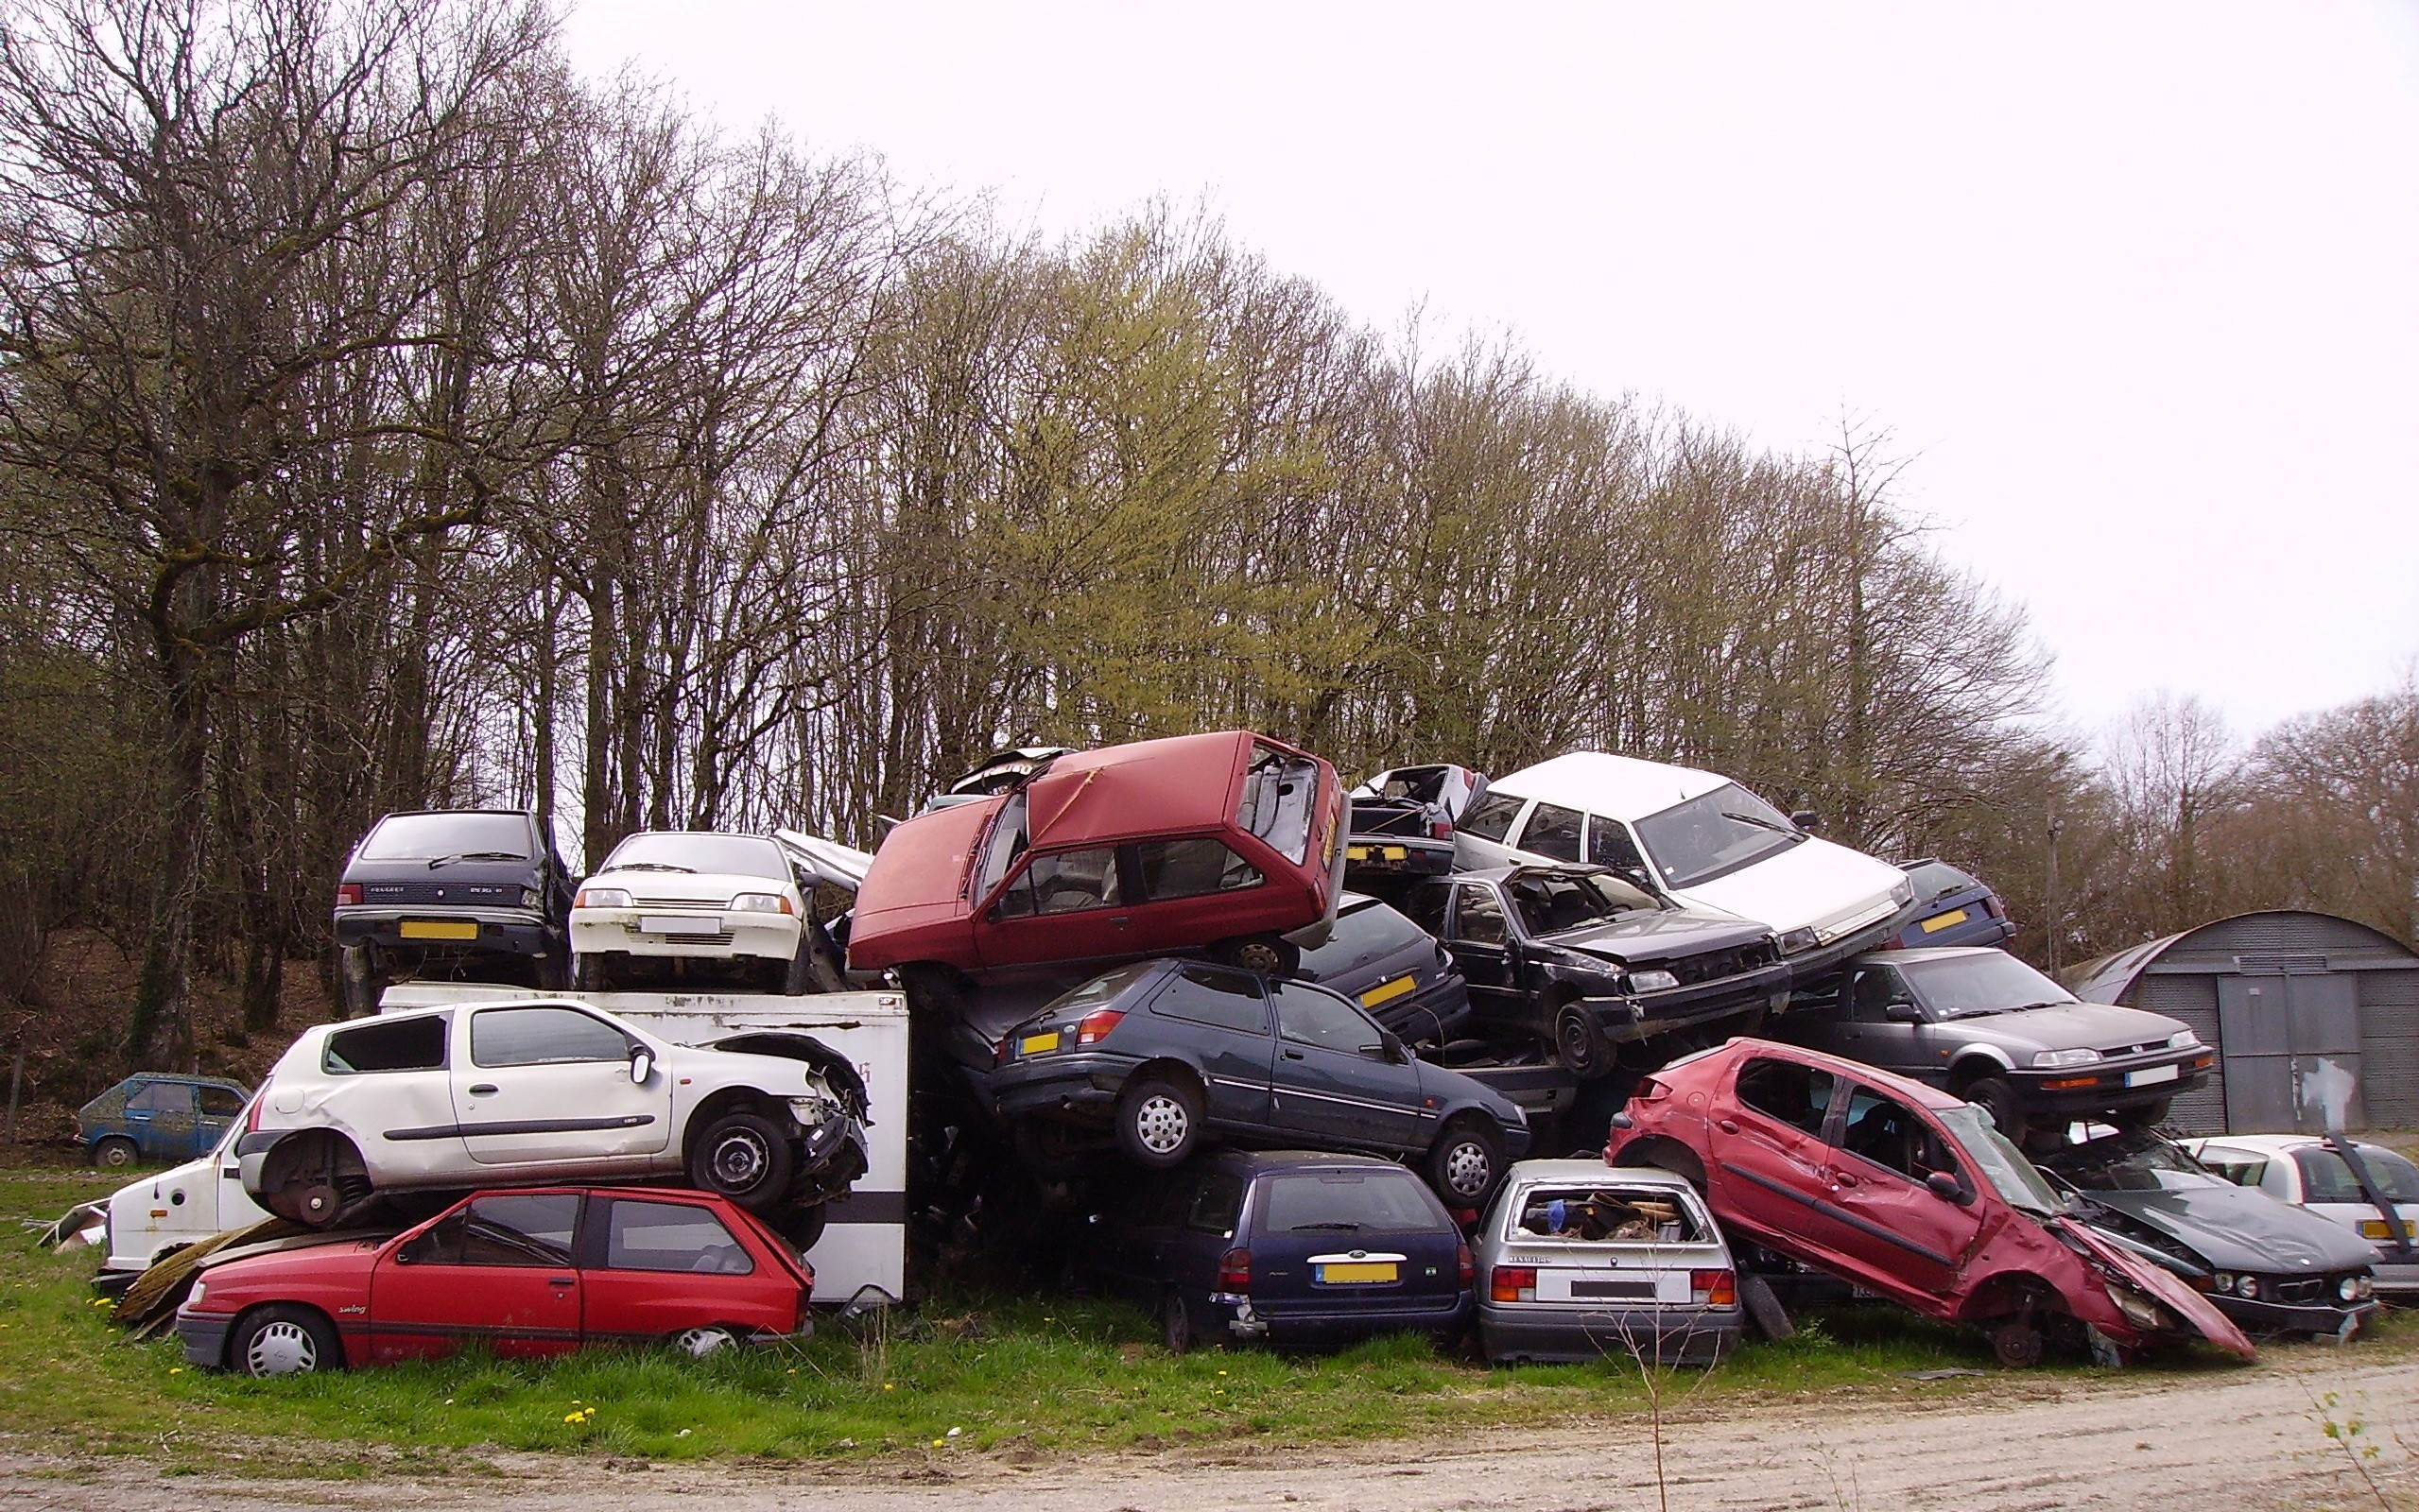 File:Automobiles in a french junkyard.jpg - Wikimedia Commons